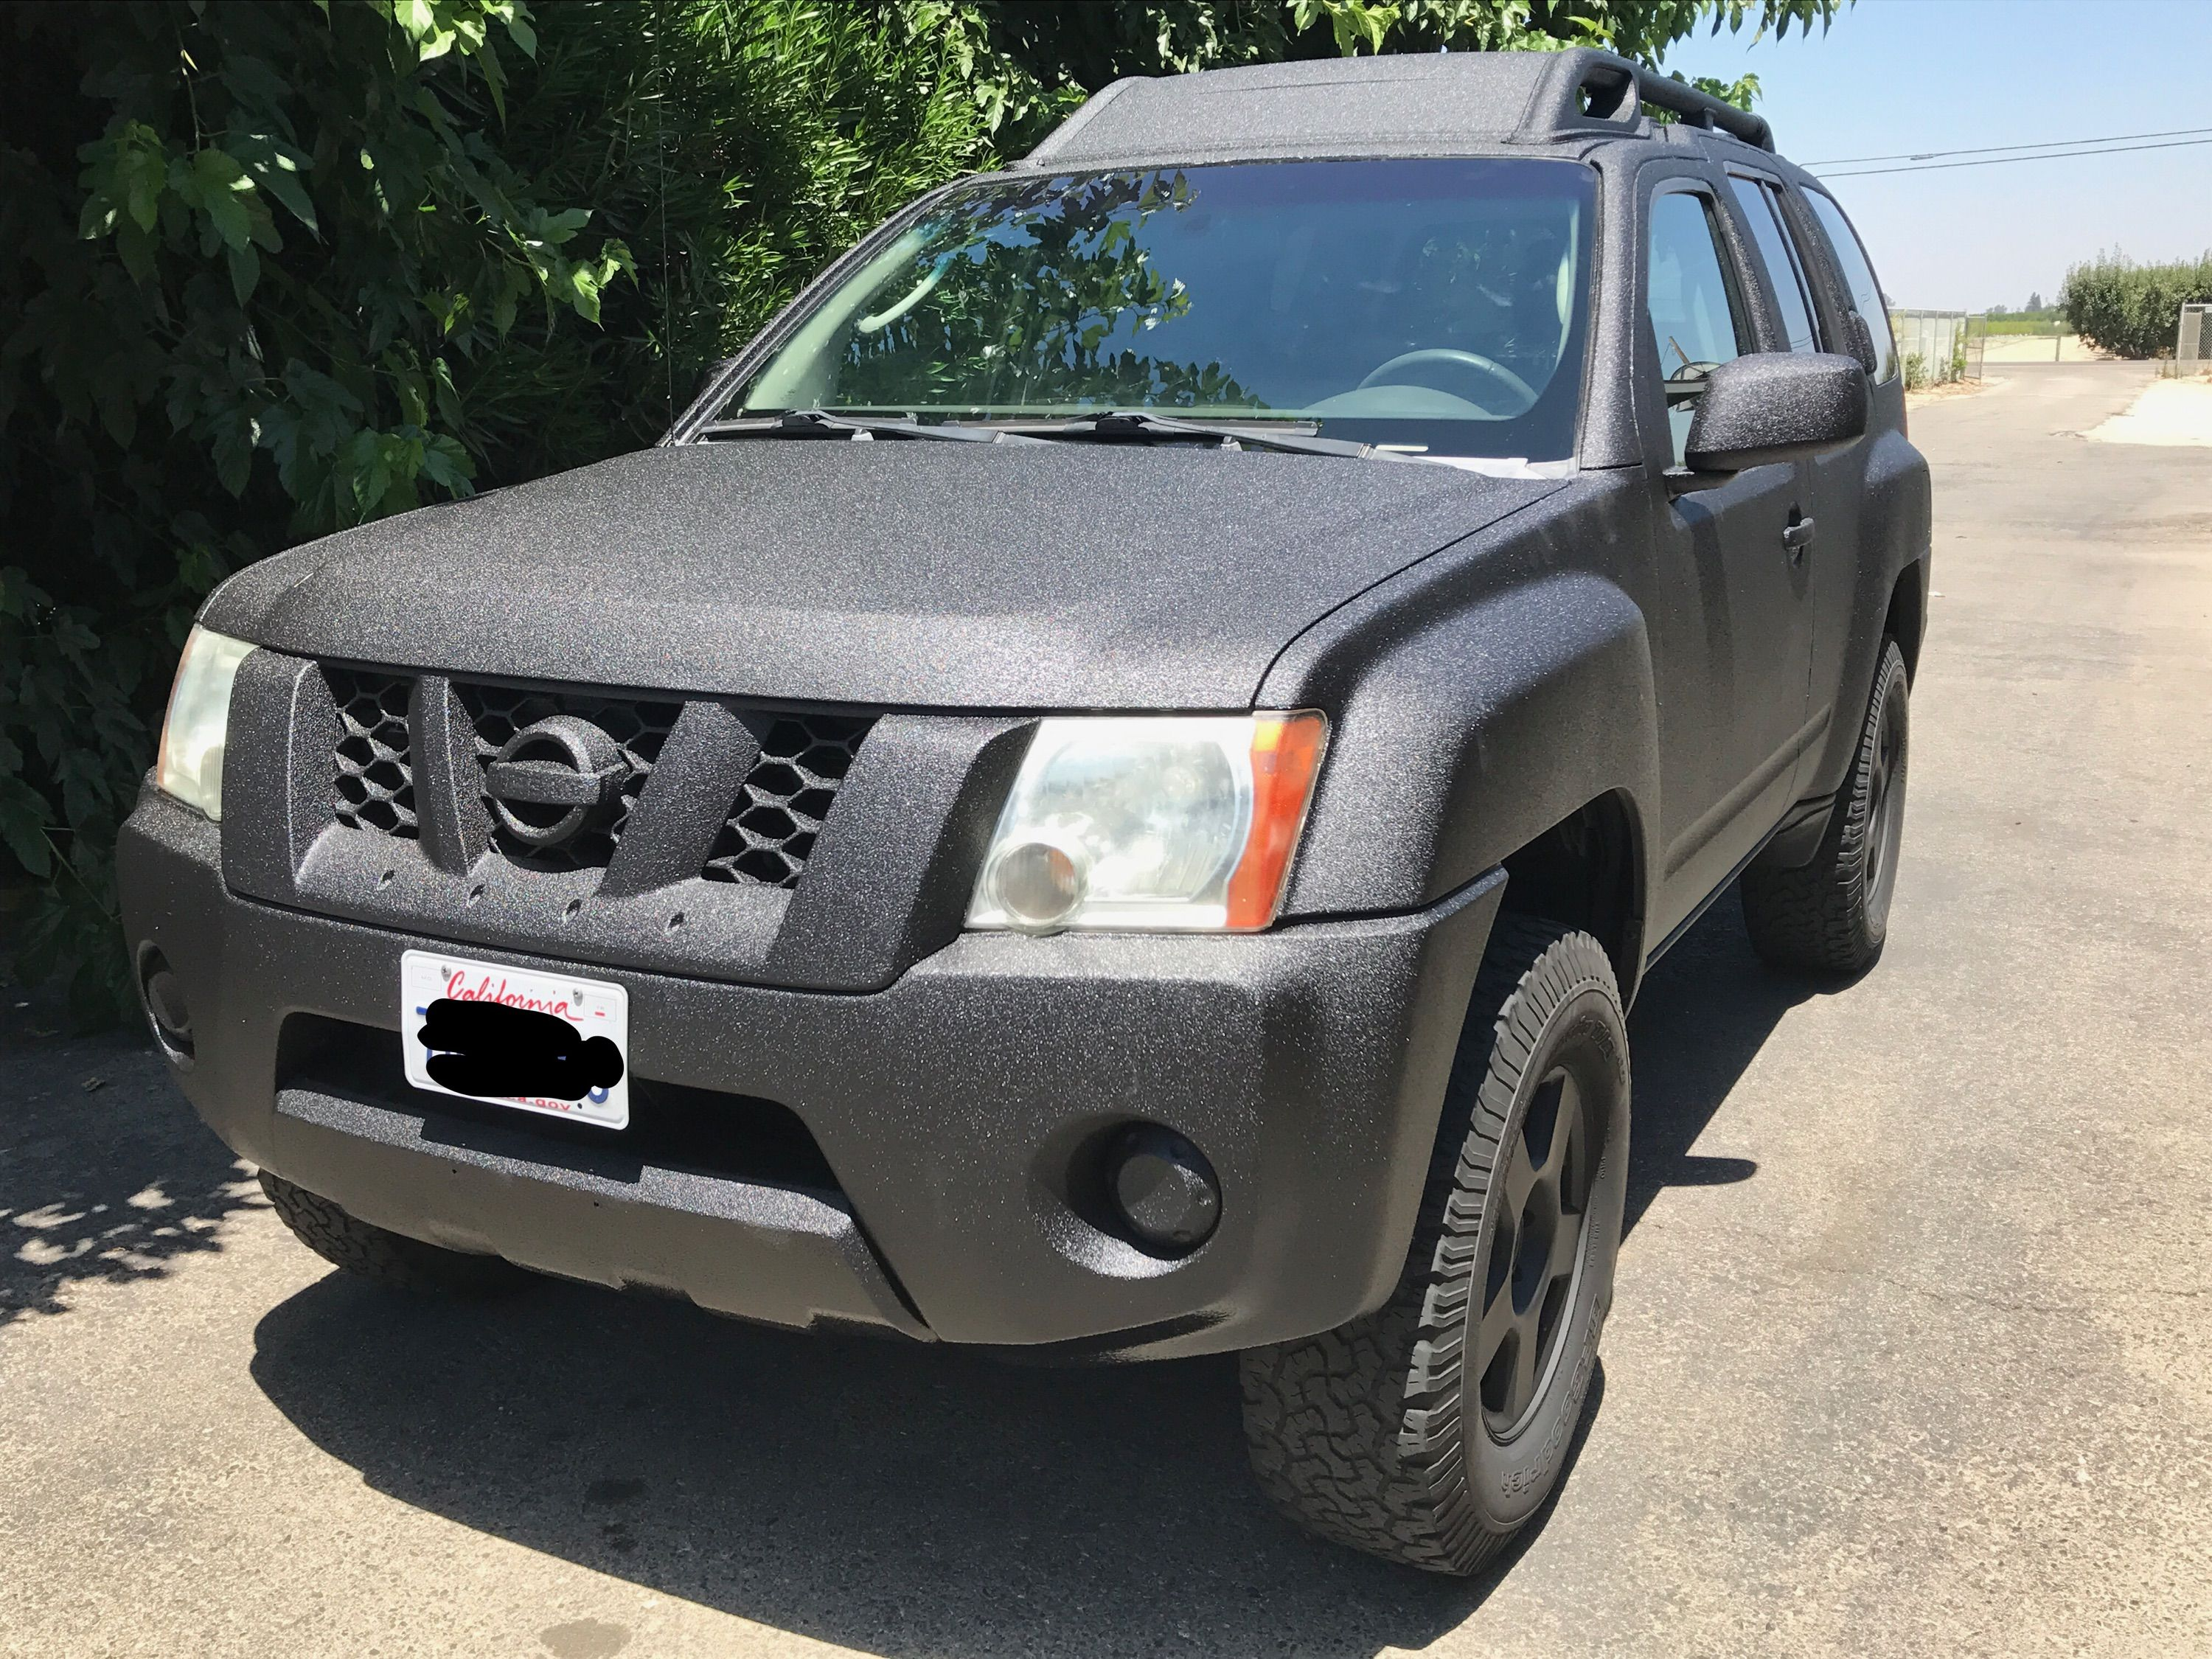 Nissan Xterra Bed lined lineX paint job Flat Black